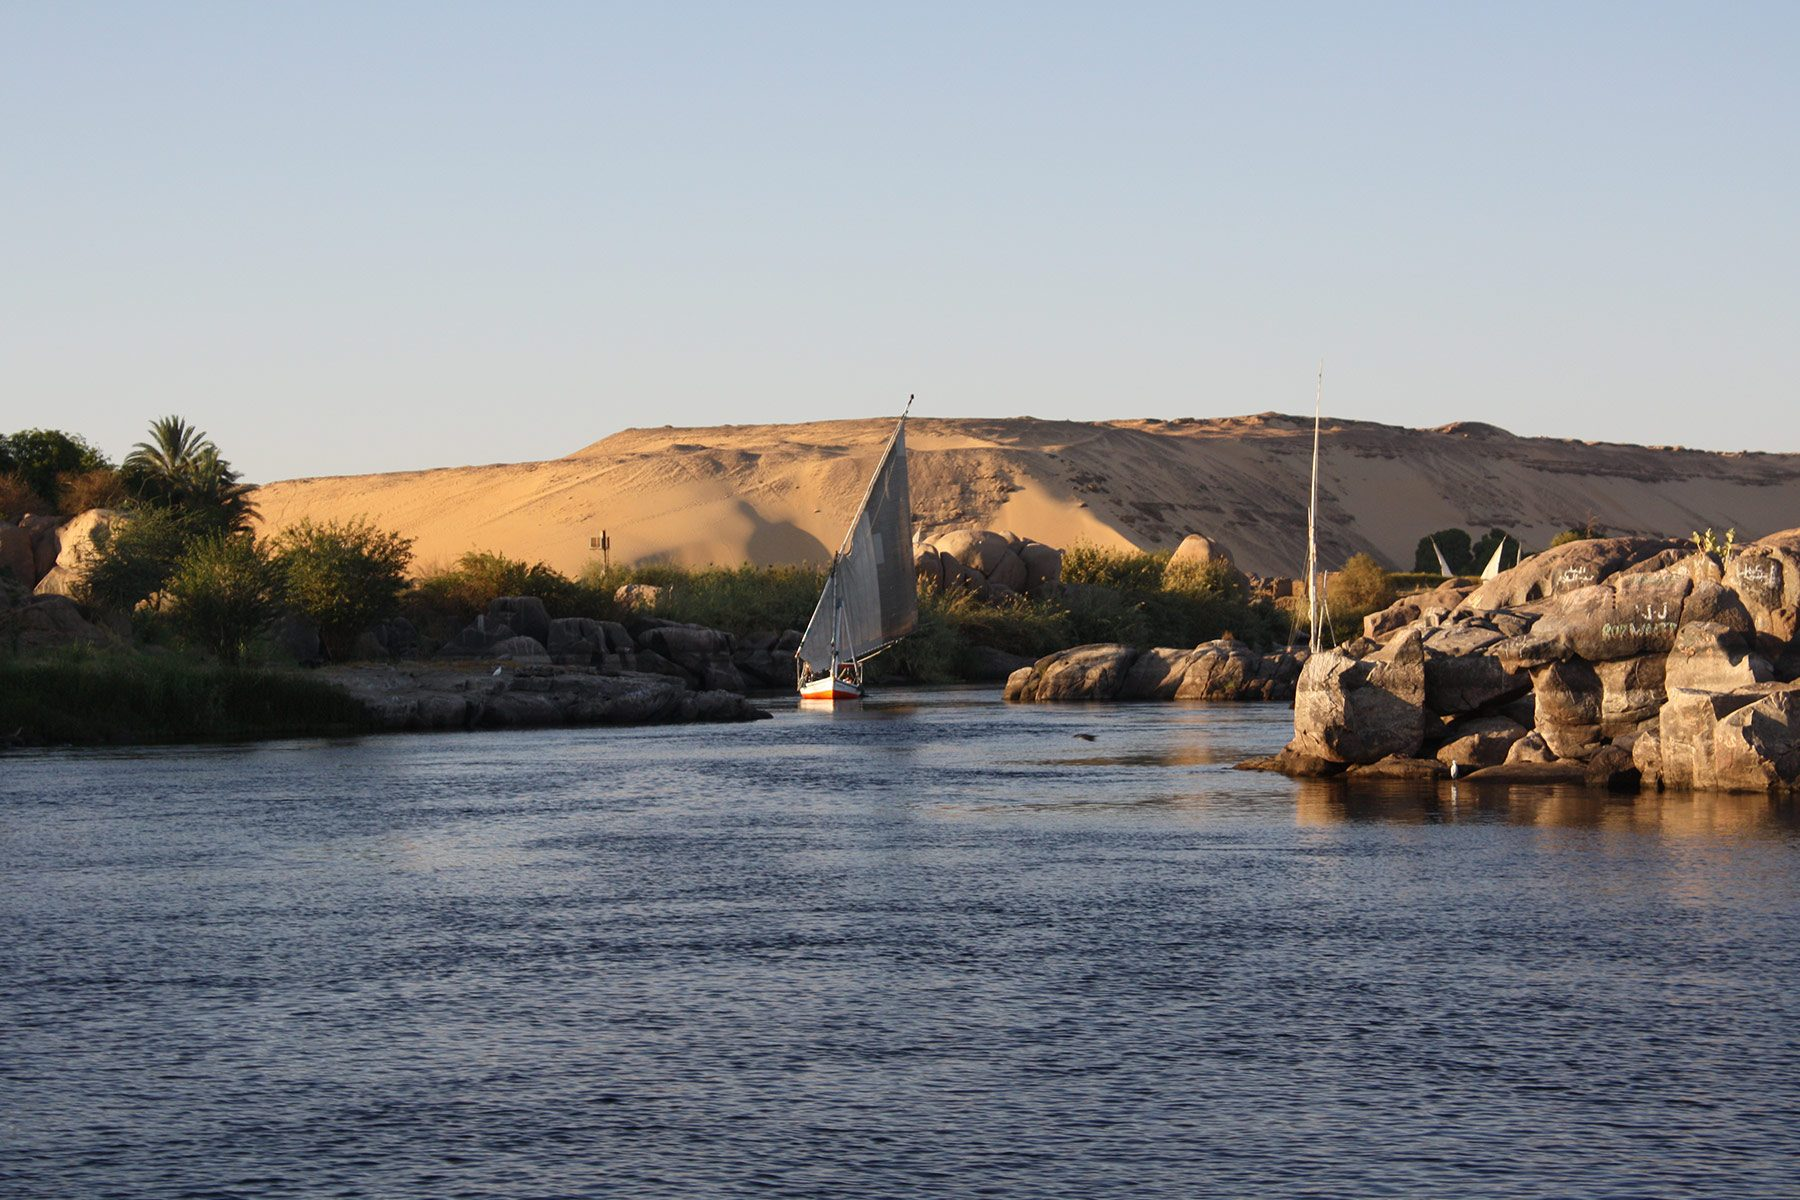 A felucca boat on a river in Egypt, by Pablo Torres on Flickr.